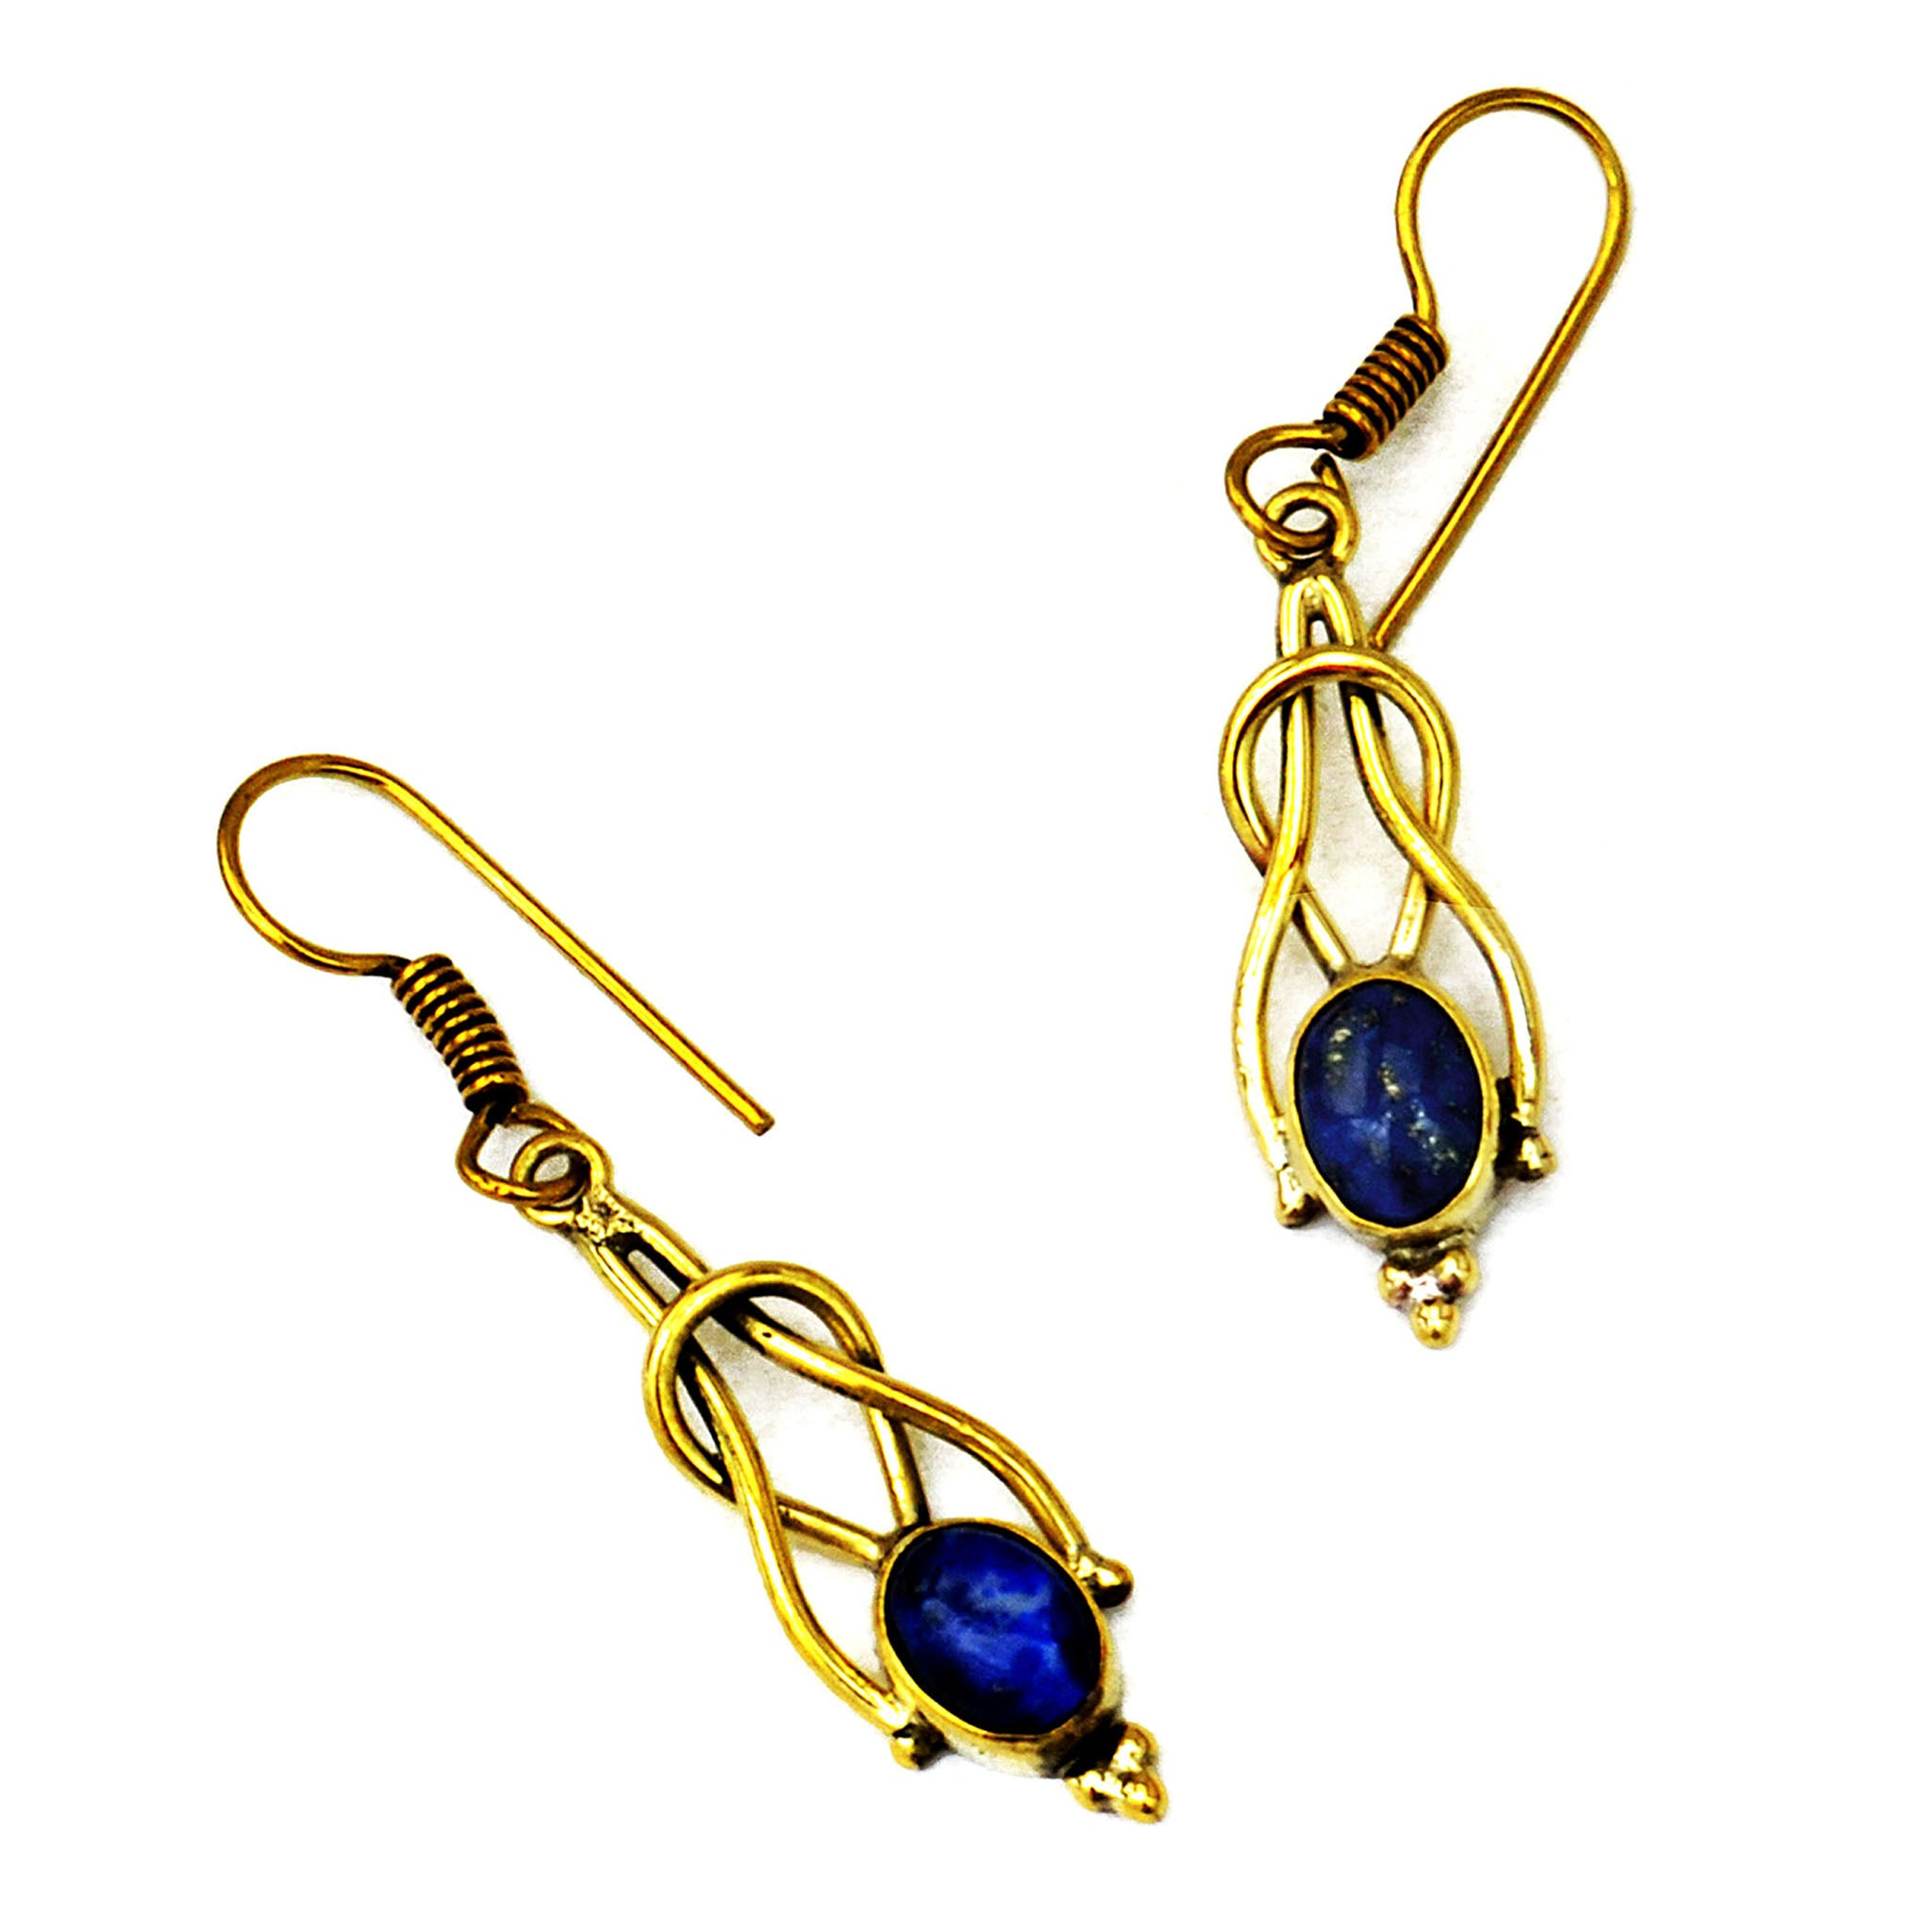 Vintage earrings with lapis